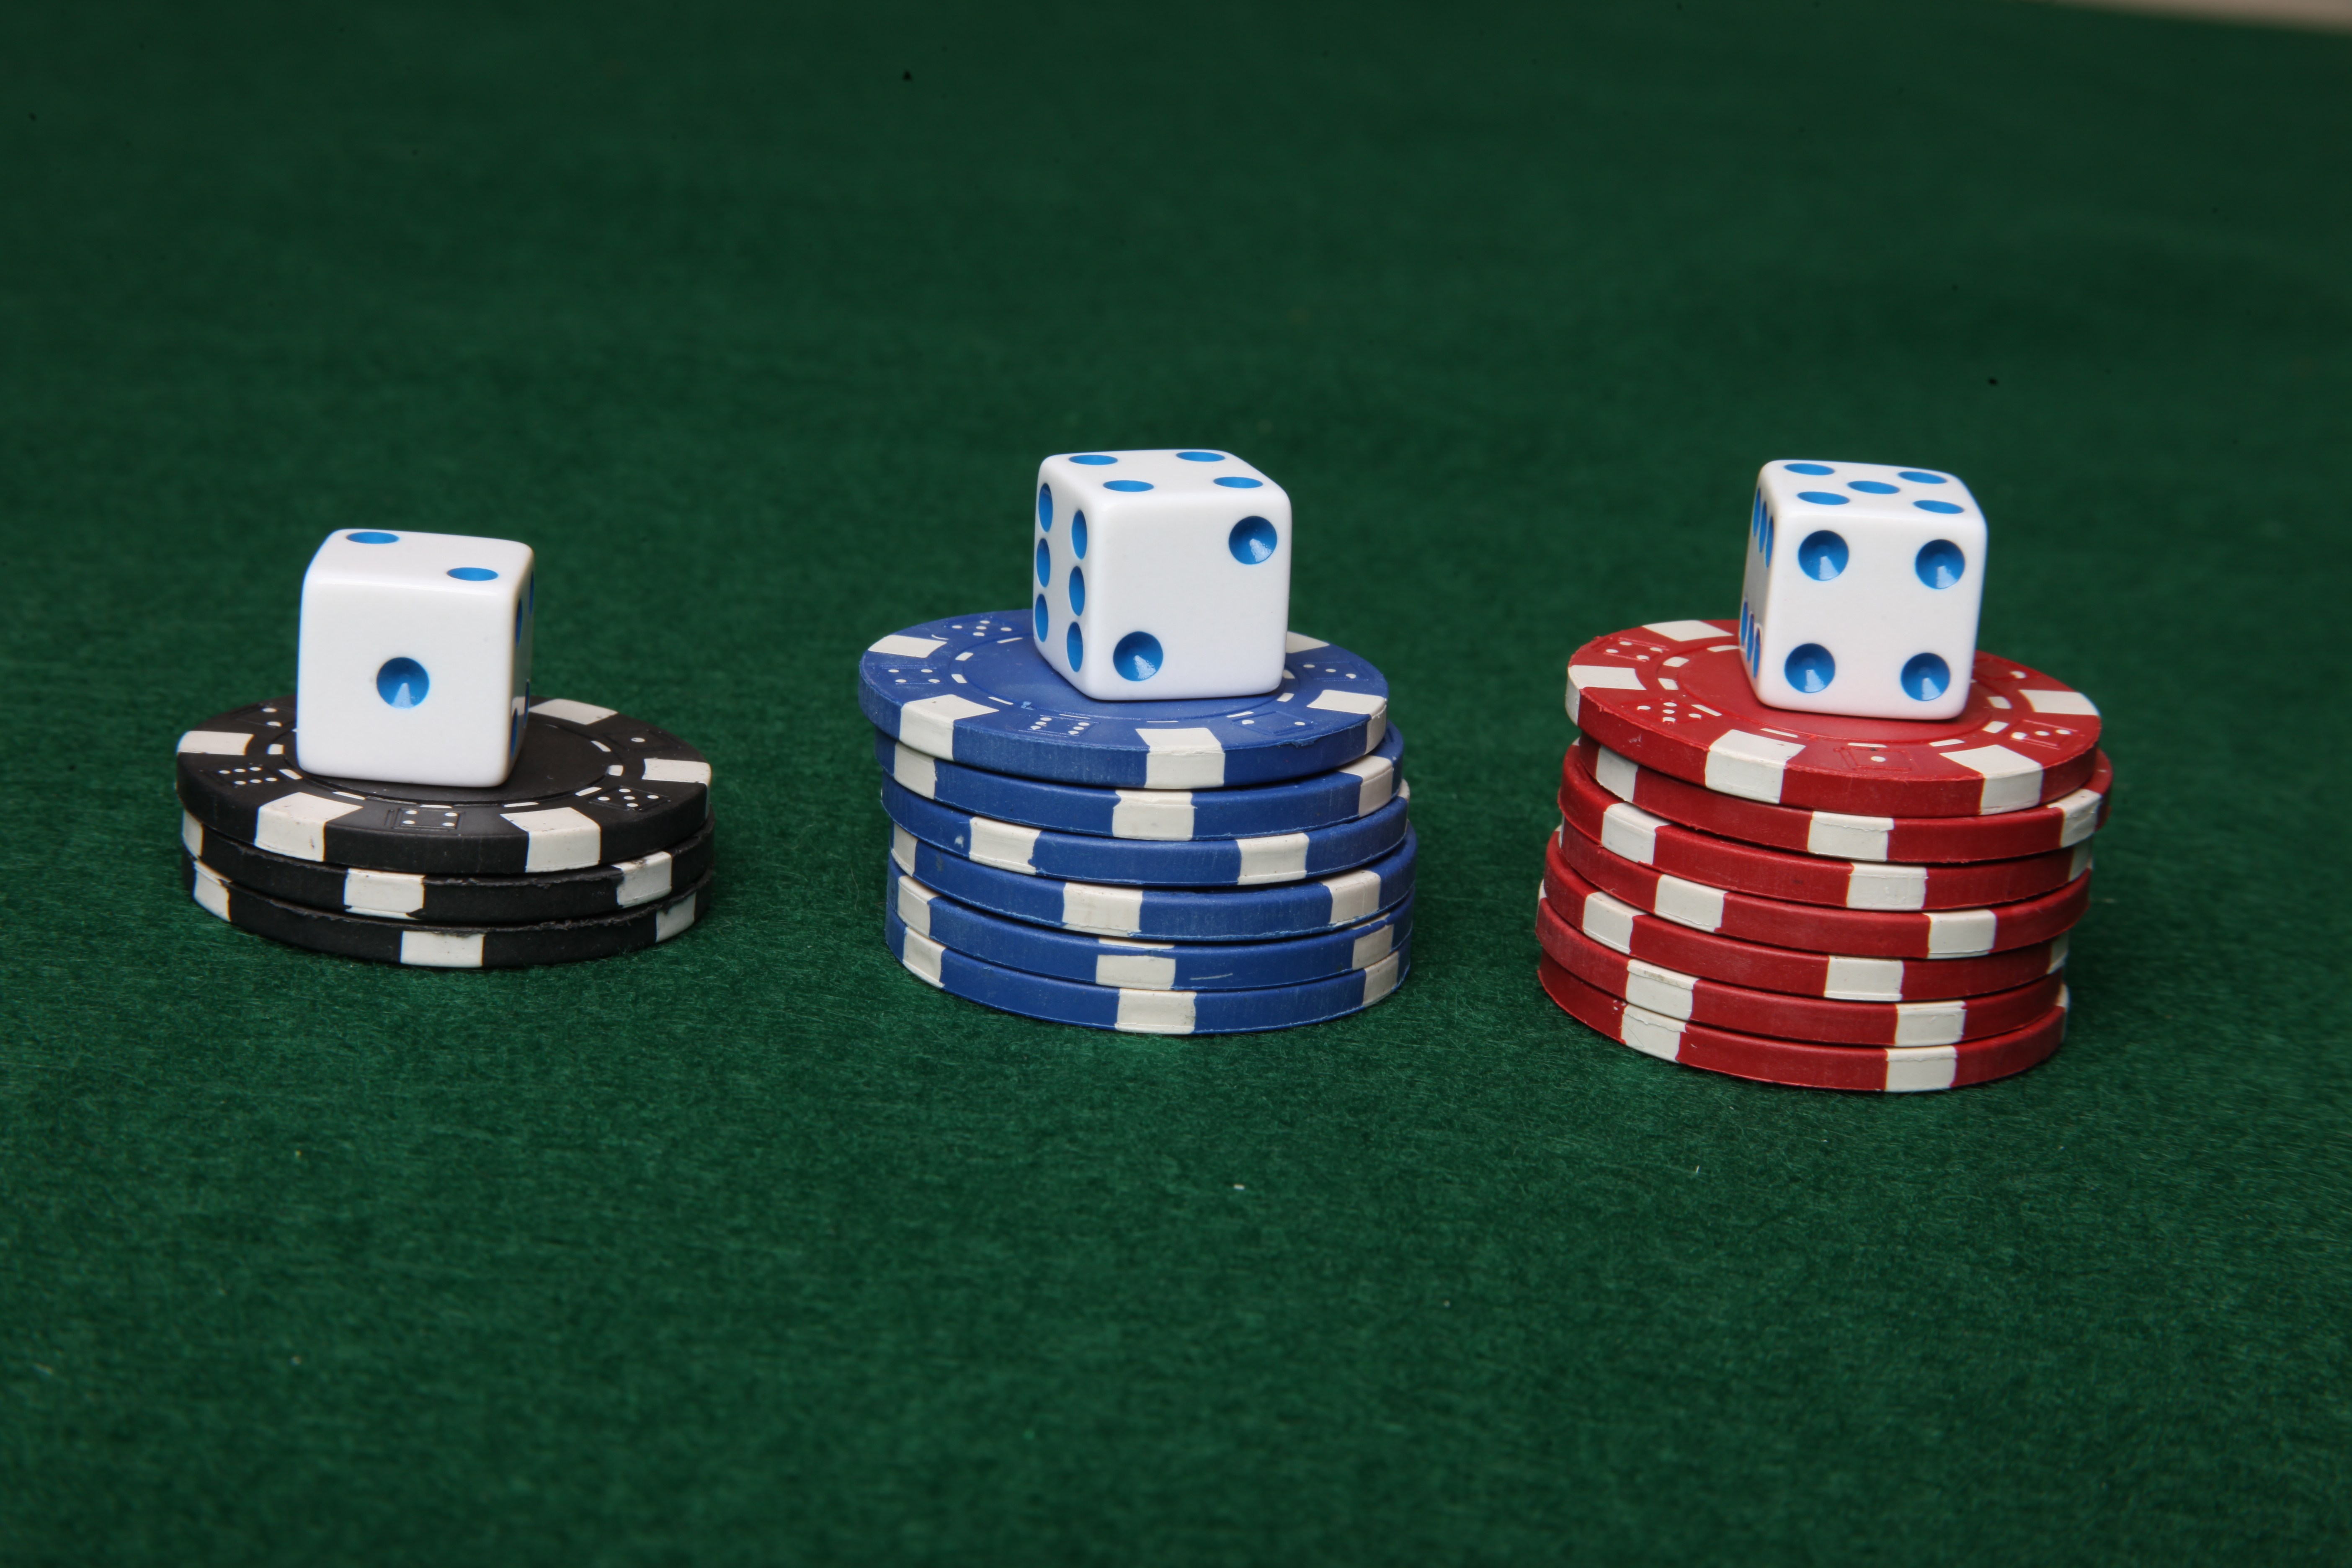 Poker chips and dice., Reward, Poker, Las, Risk, HQ Photo